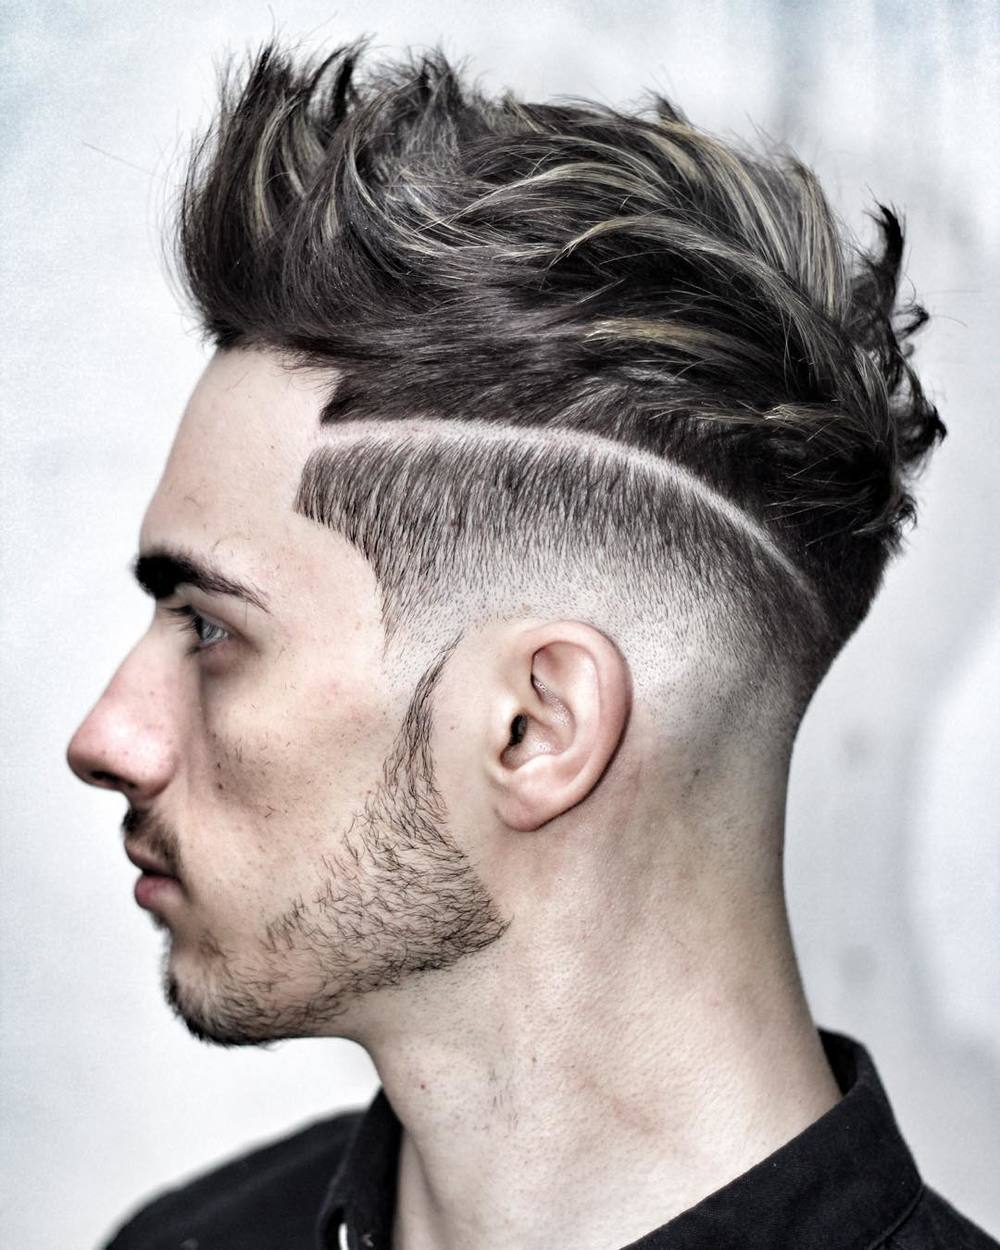 ryancullenhair_and-hi-lo-fade-textured-quiff.jpg